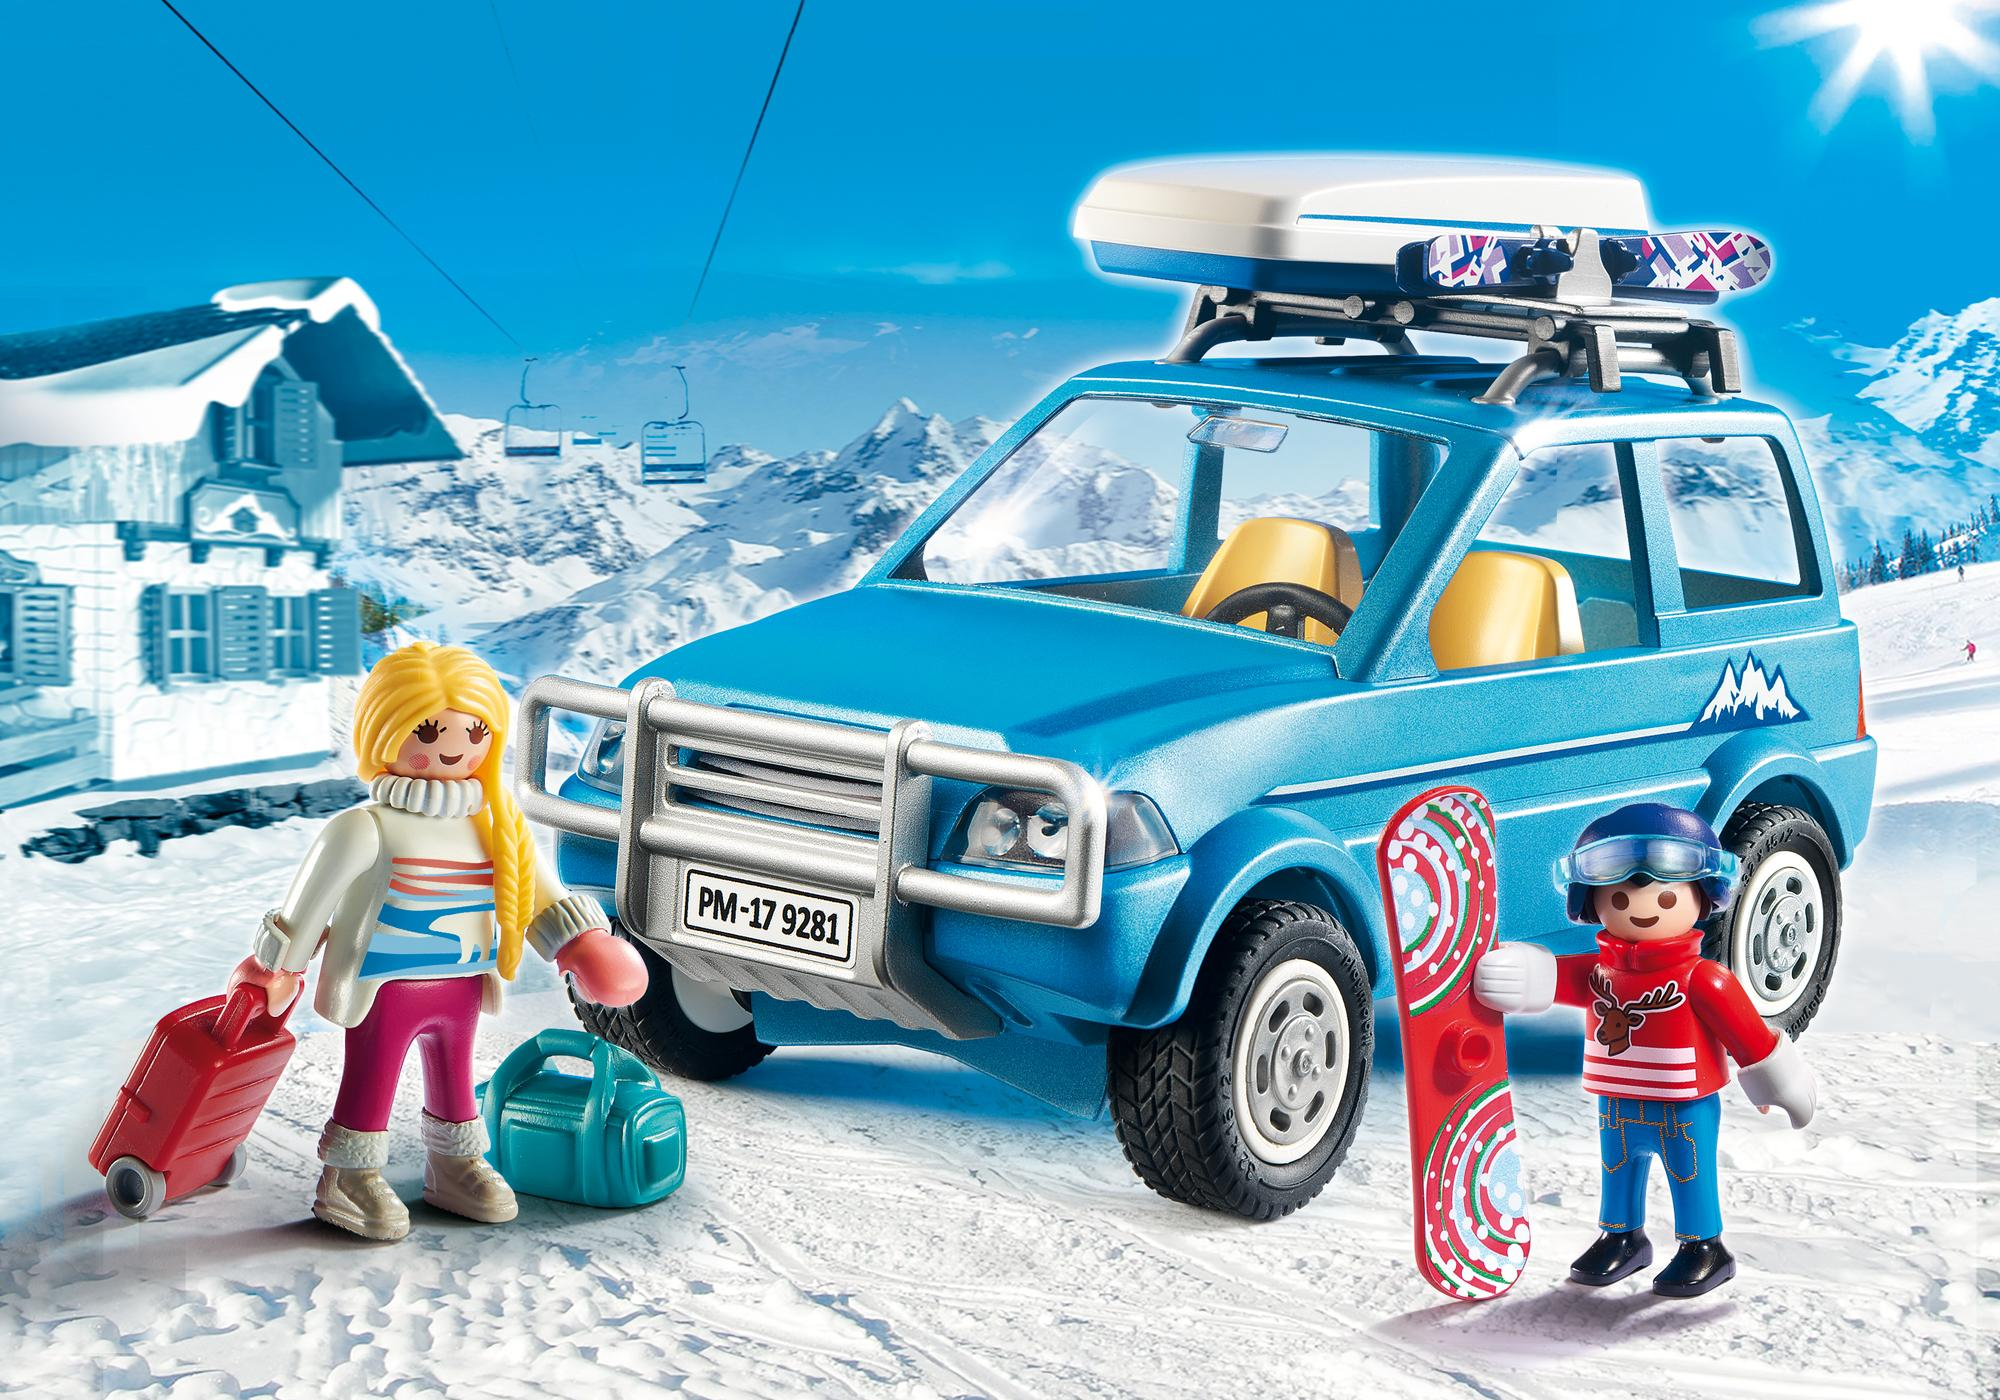 http://media.playmobil.com/i/playmobil/9281_product_detail/Auto mit Dachbox